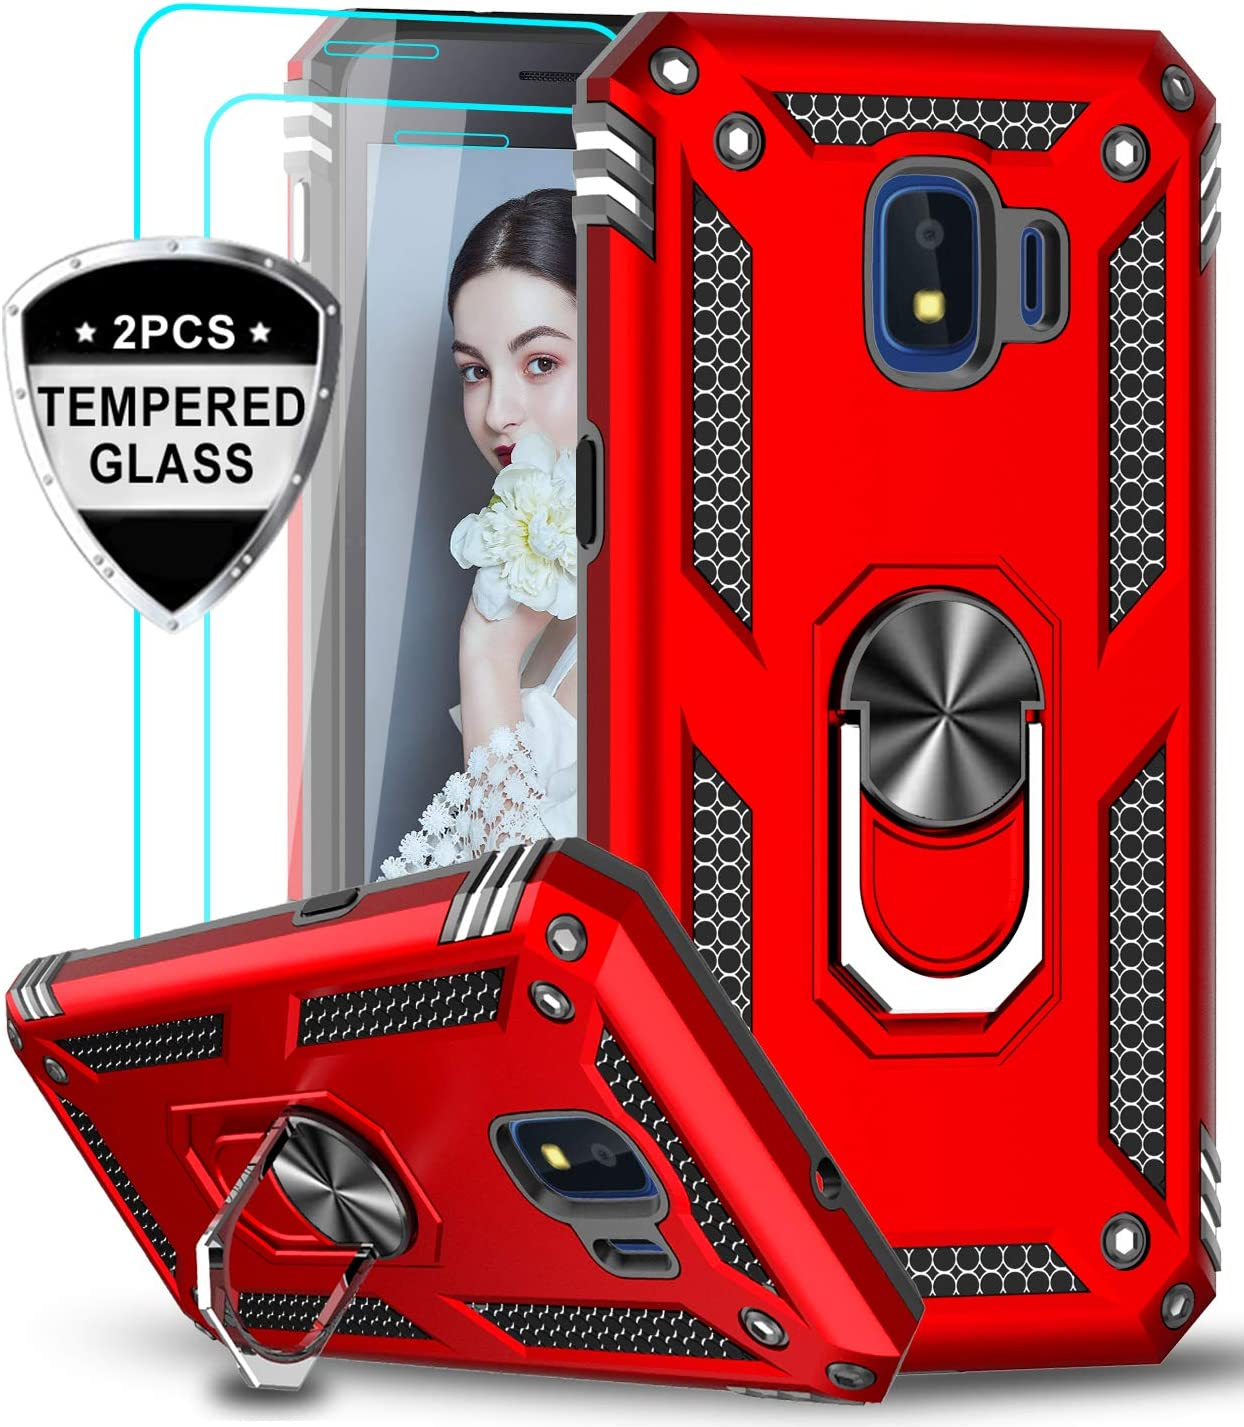 LeYi Samsung Galaxy J2 Core / J2 Pure / J2 Shine / J2 Dash Case with Tempered Glass Screen Protector [2 Pack], Military Grade Phone Case with Car Ring Kickstand for Samsung J2 Core / J2 2019, Red